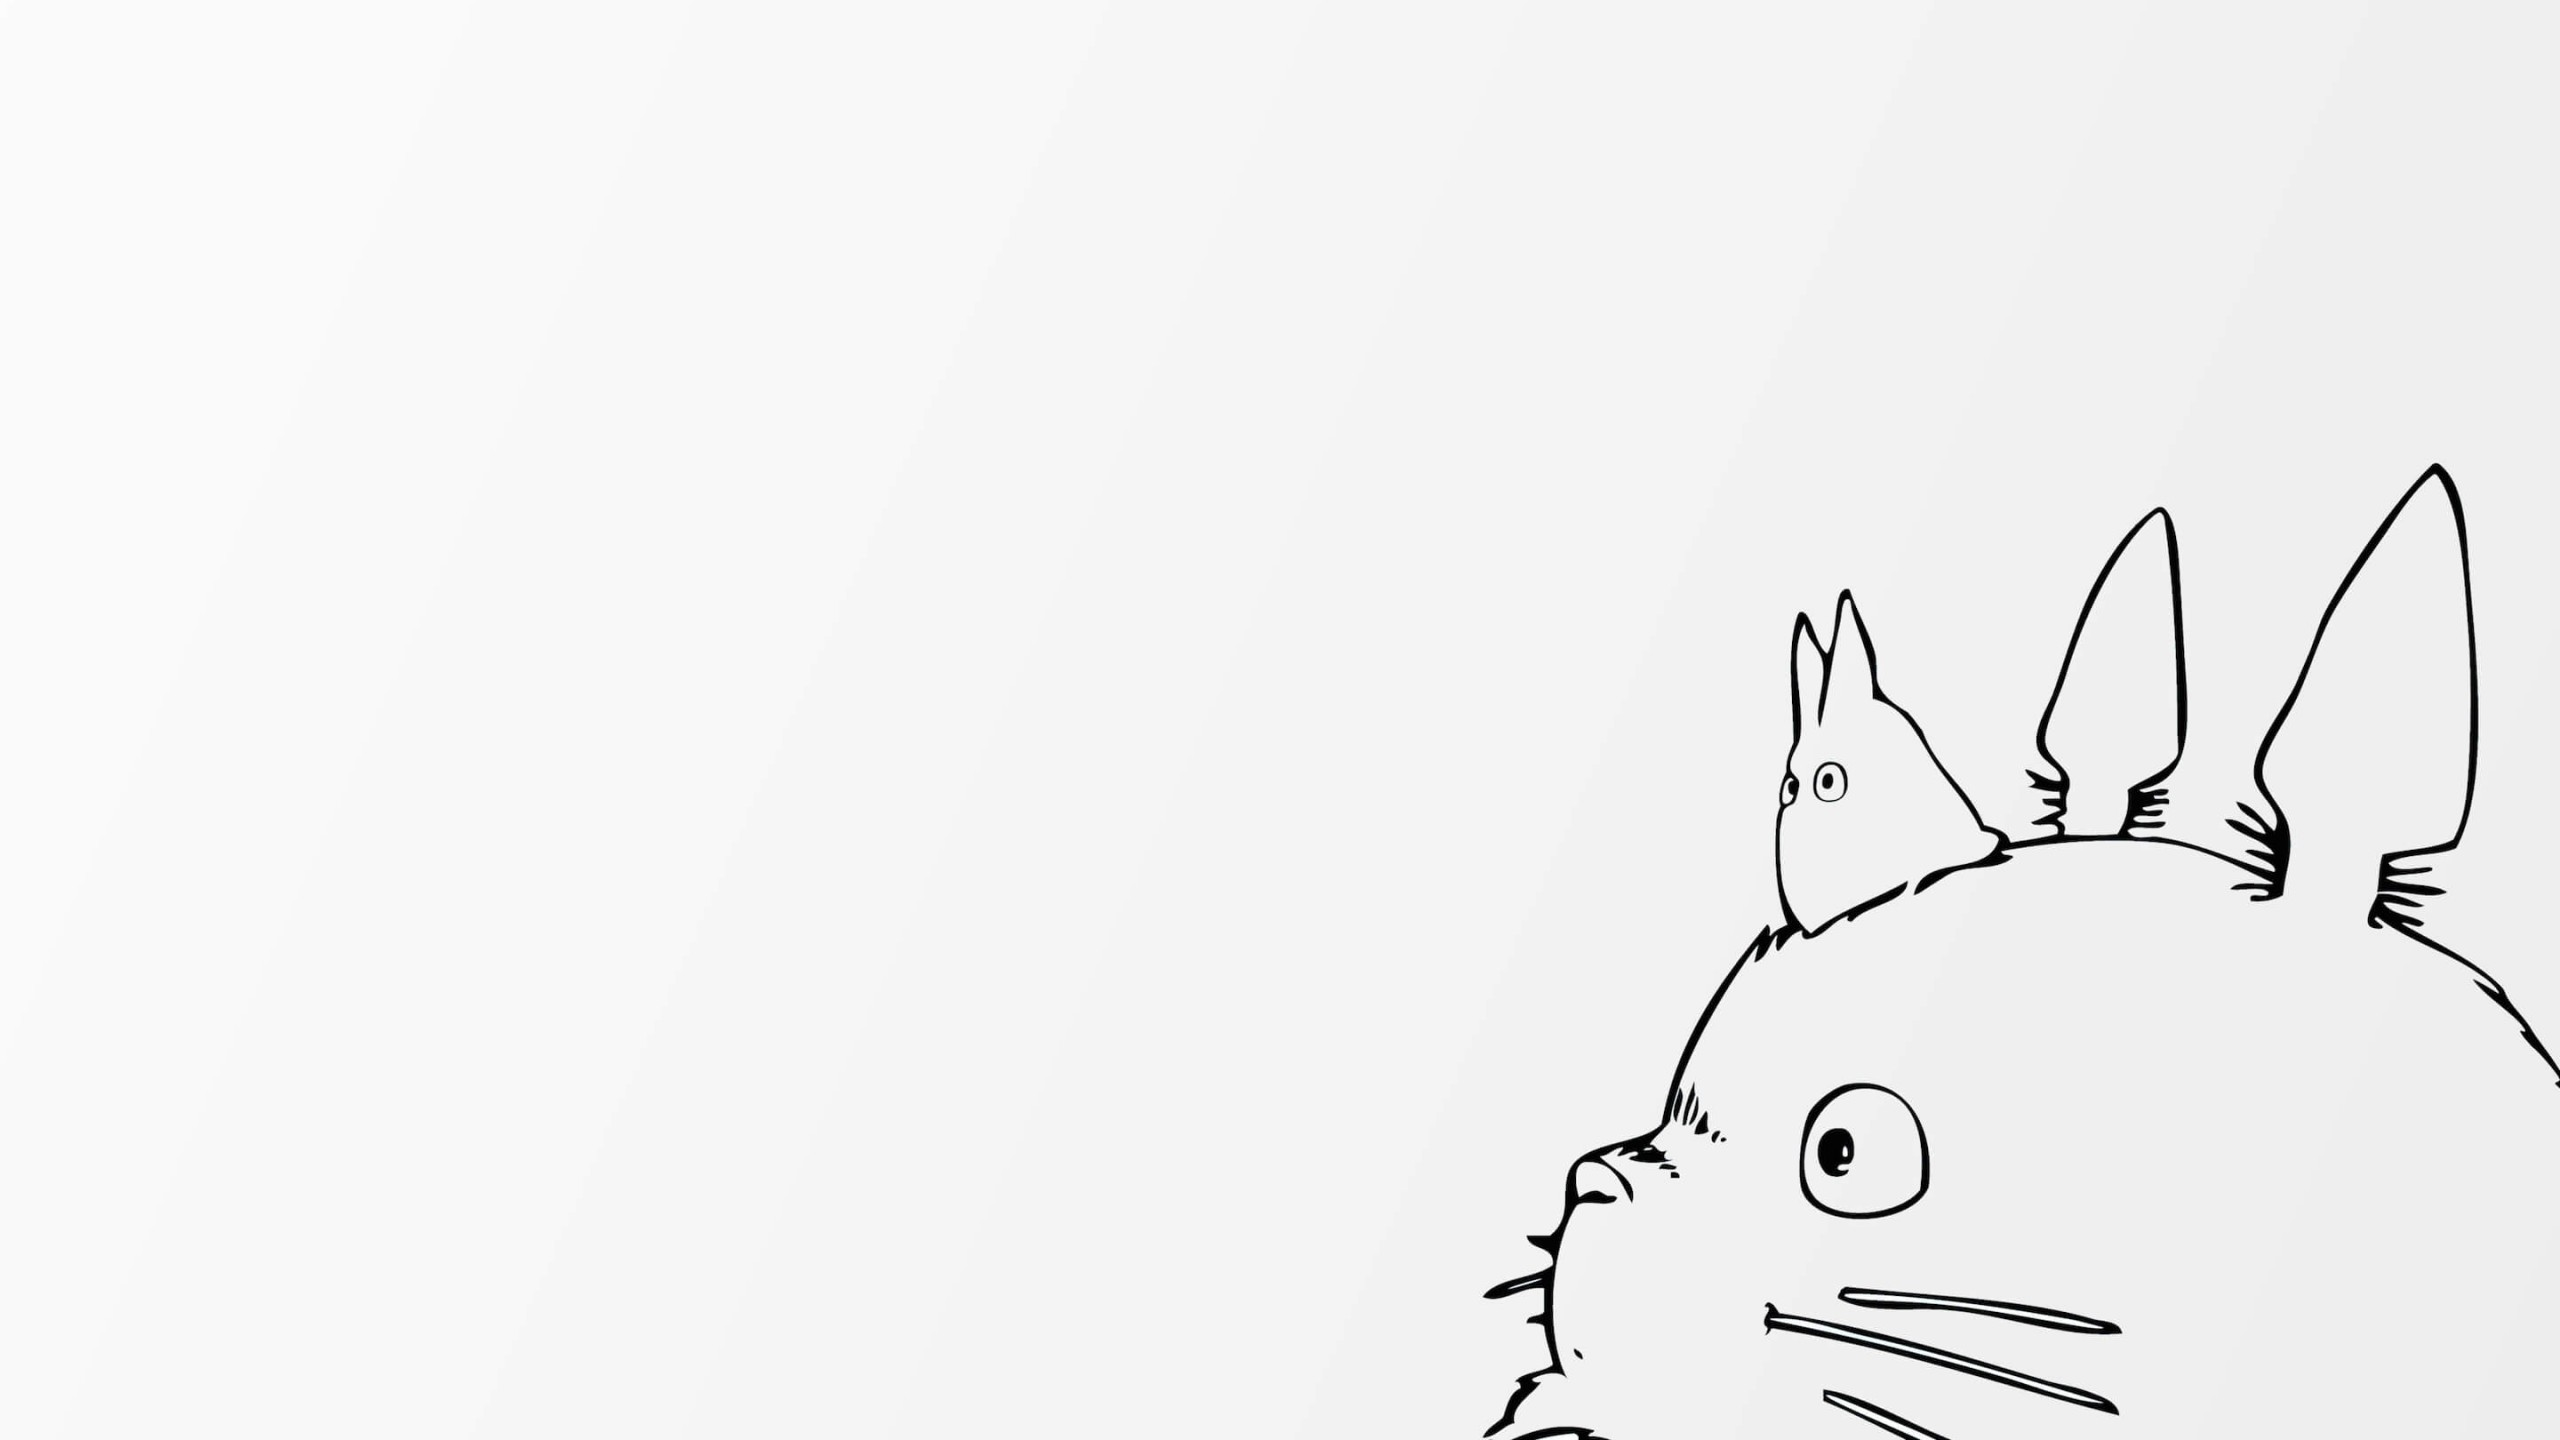 Hd Wallpapers My Neighbor Totoro Wallpapers Pictures Images